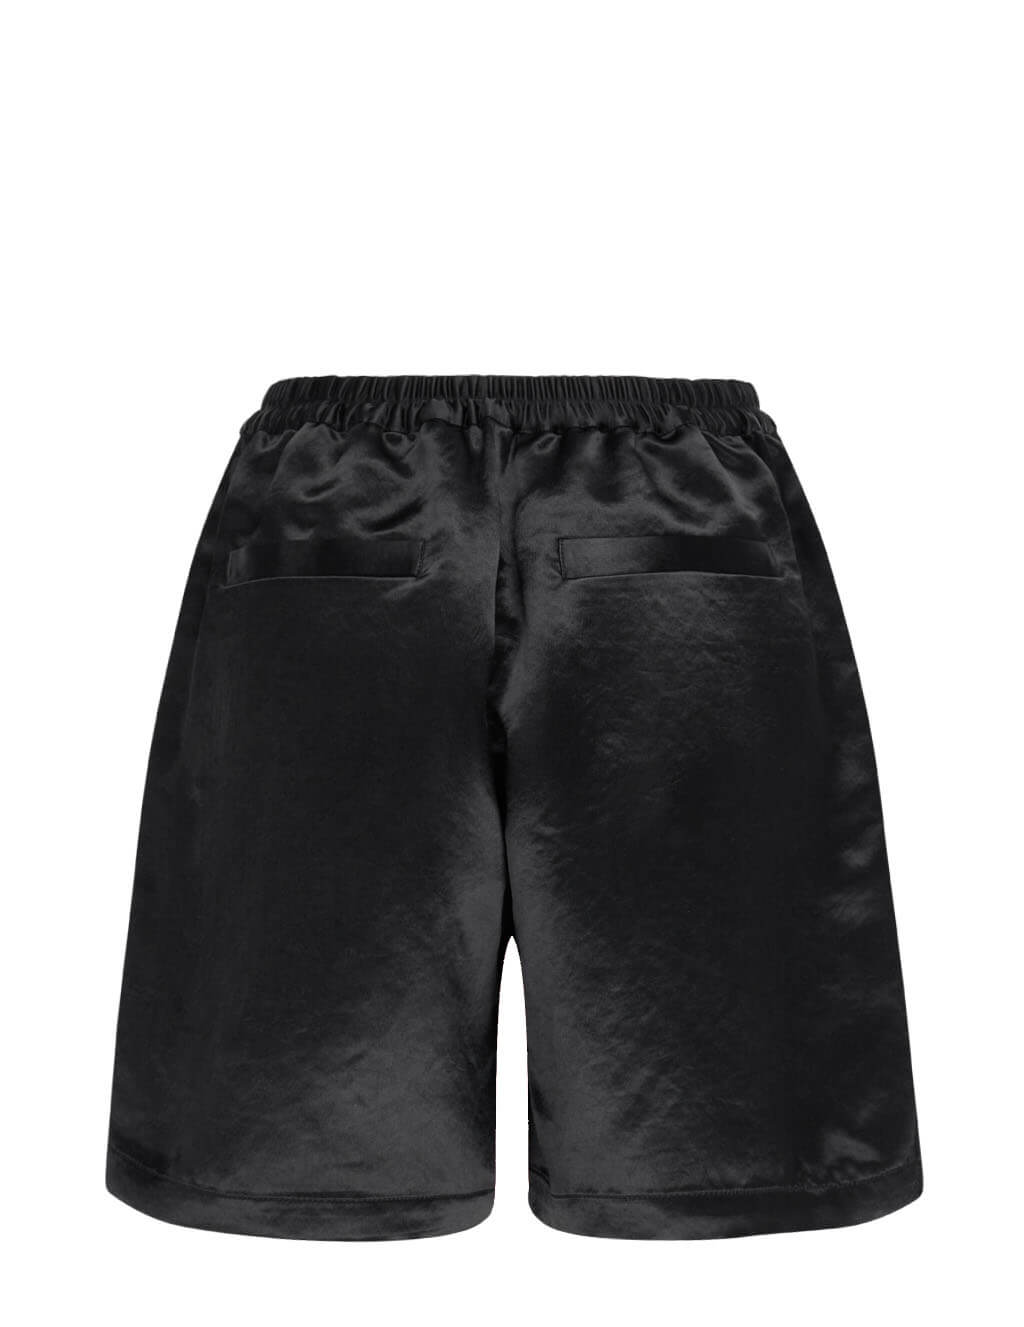 Women's Acne Studios Ren Fluid Satin Shorts in Black - AE0039-900